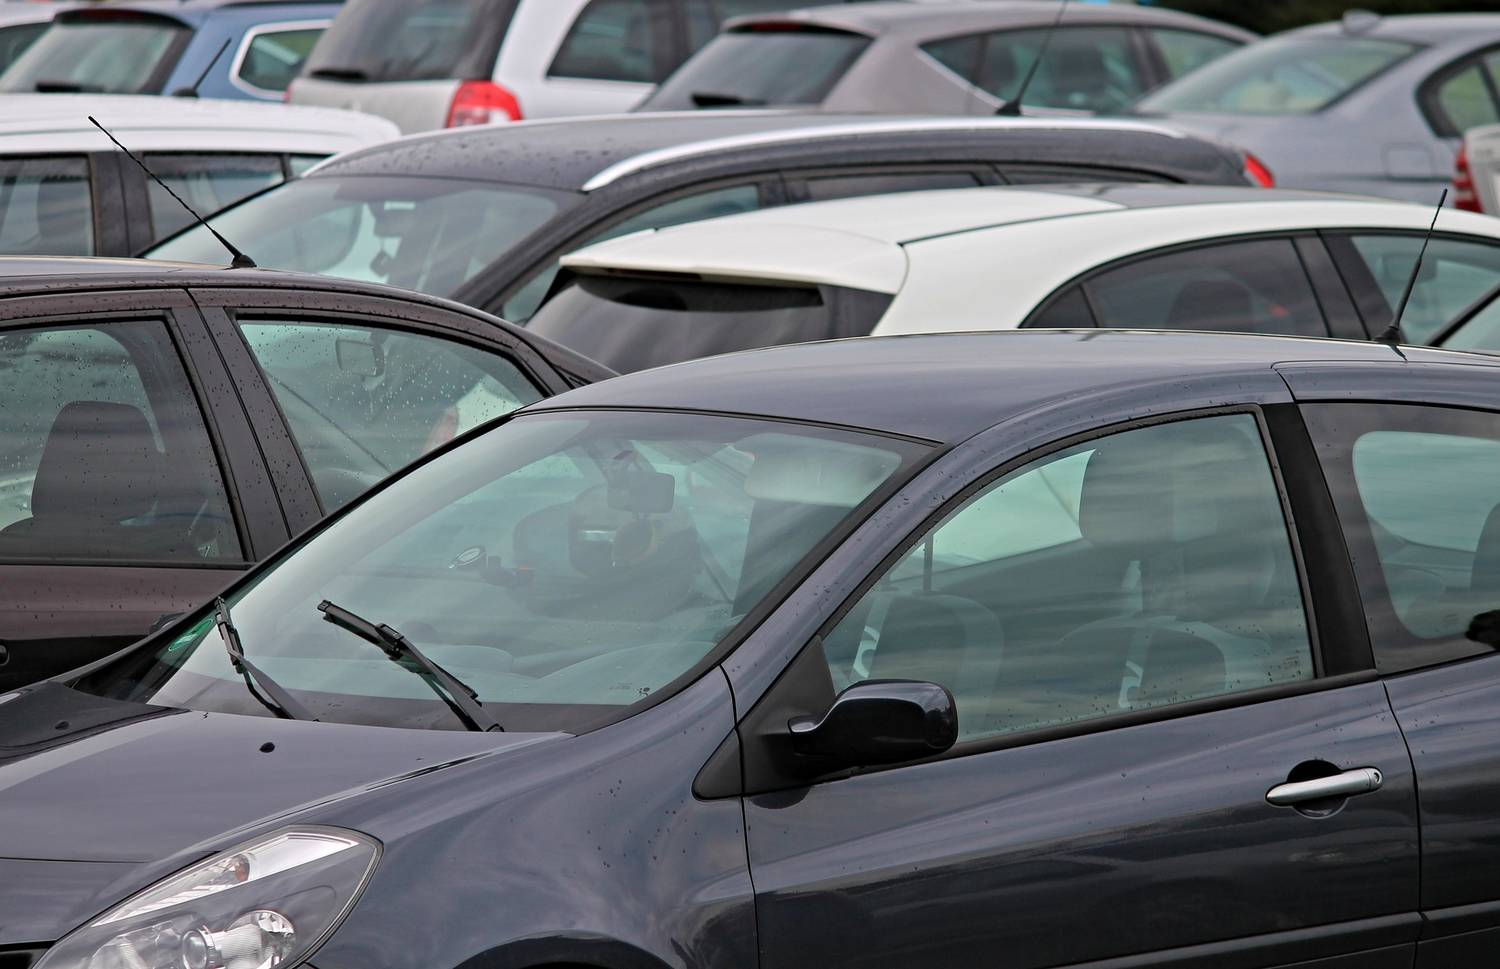 Quick sale of the vehicle - purchase of cars